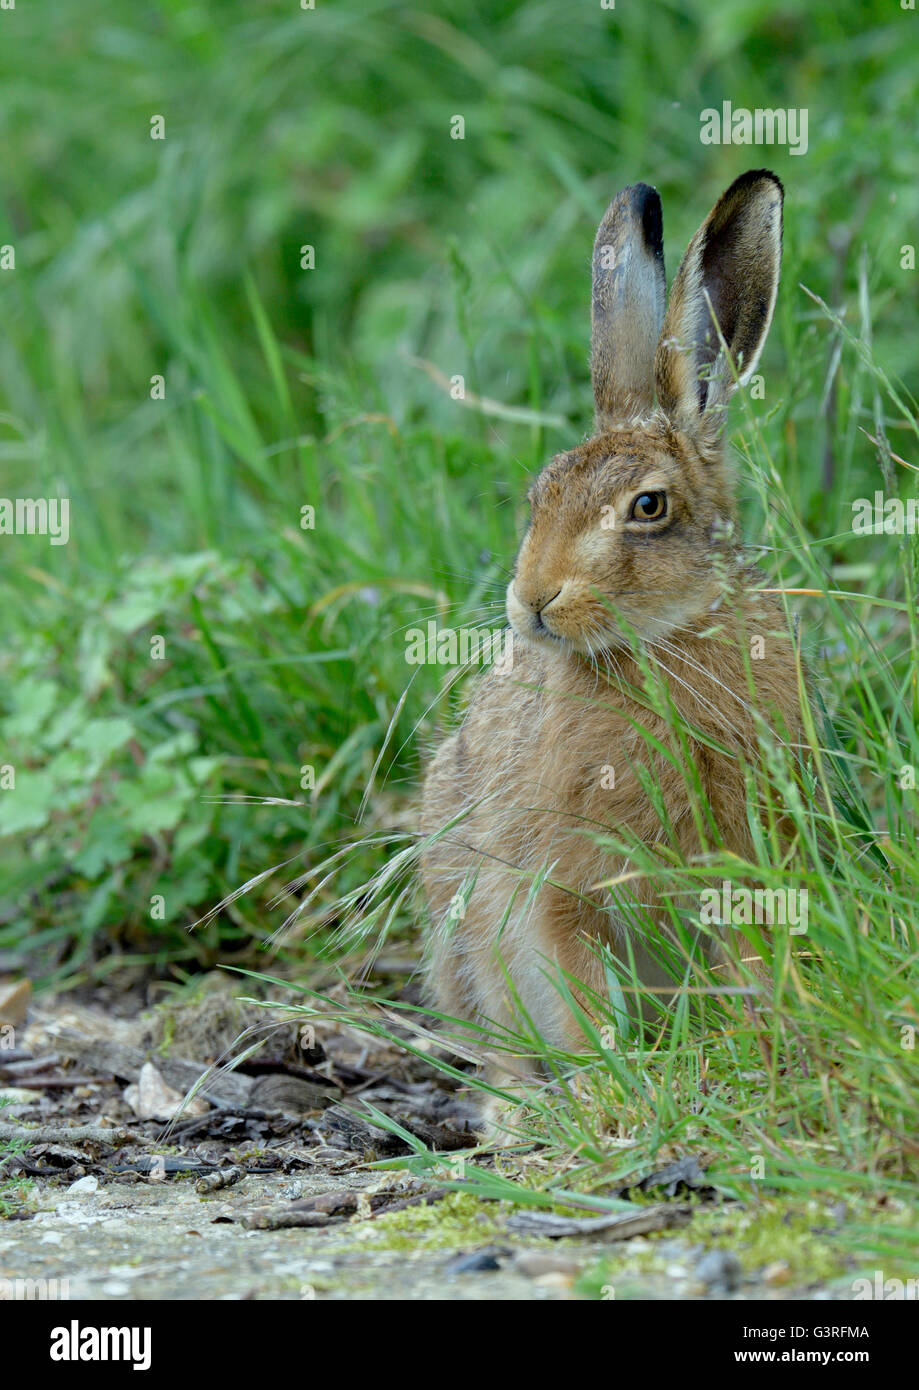 Young Brown Hare (Lepus europaeus) sat in a grass verge. - Stock Image